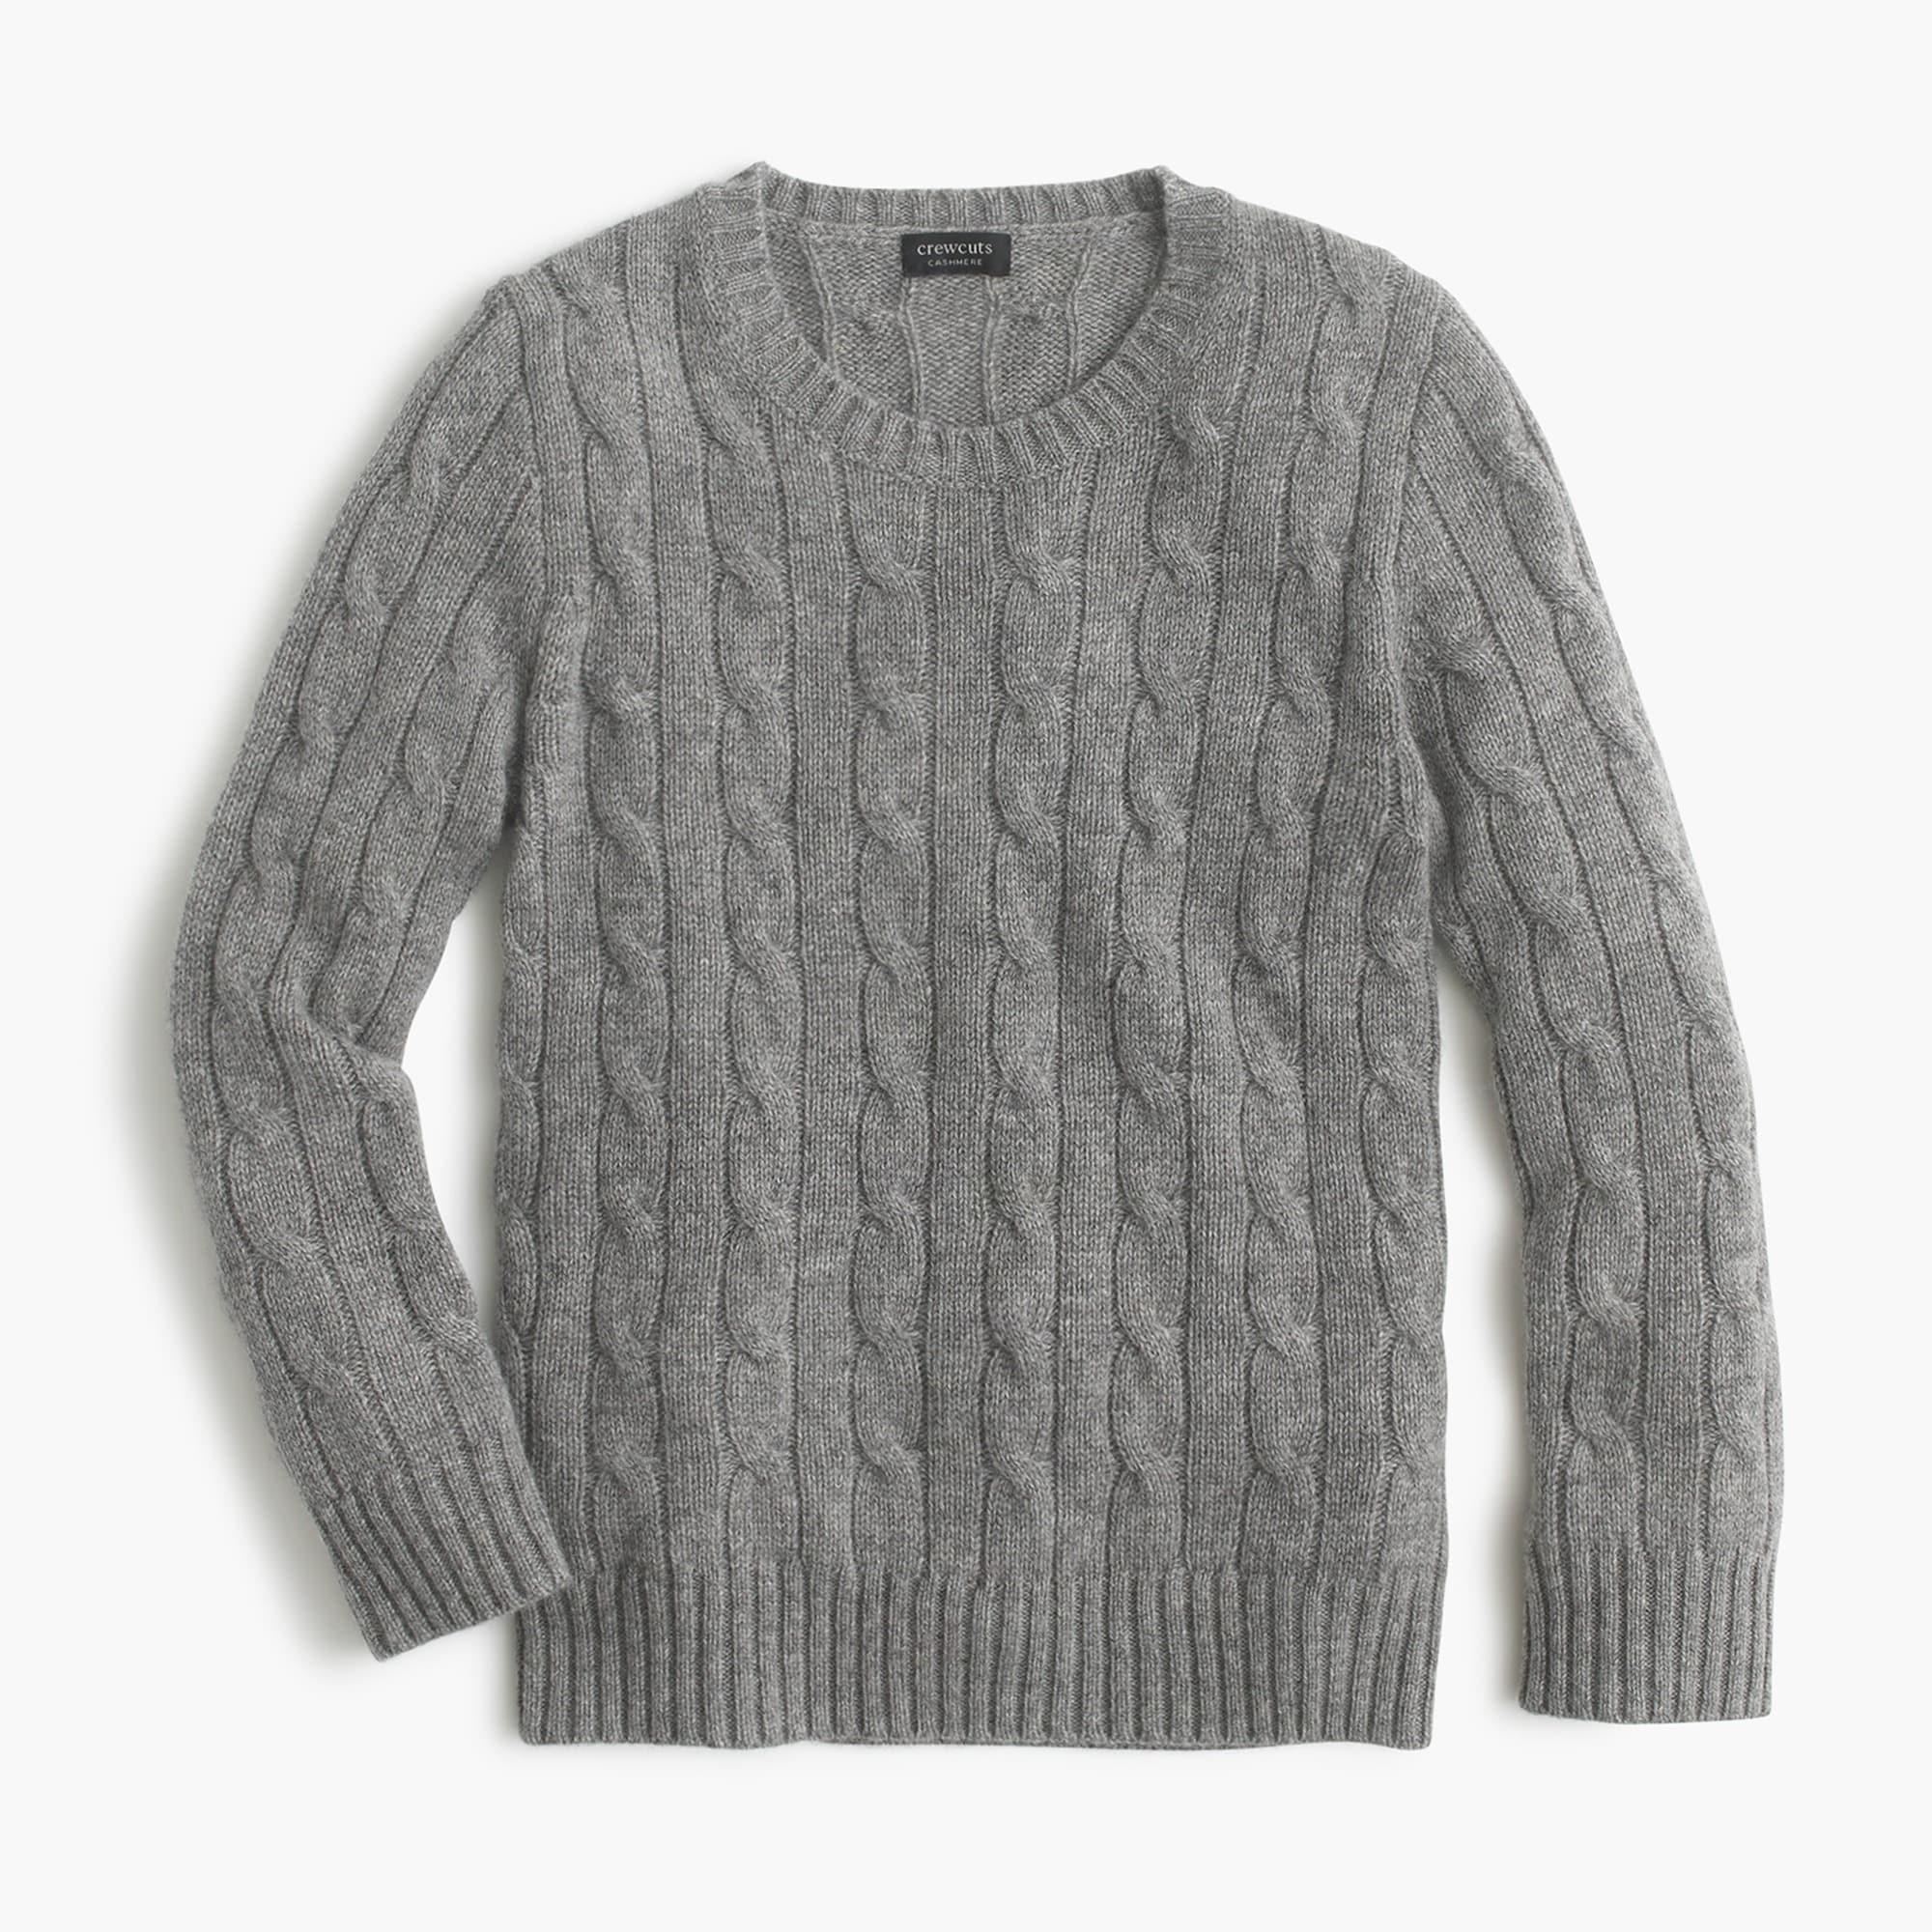 Kids' cashmere cable crewneck sweater boy sweaters c